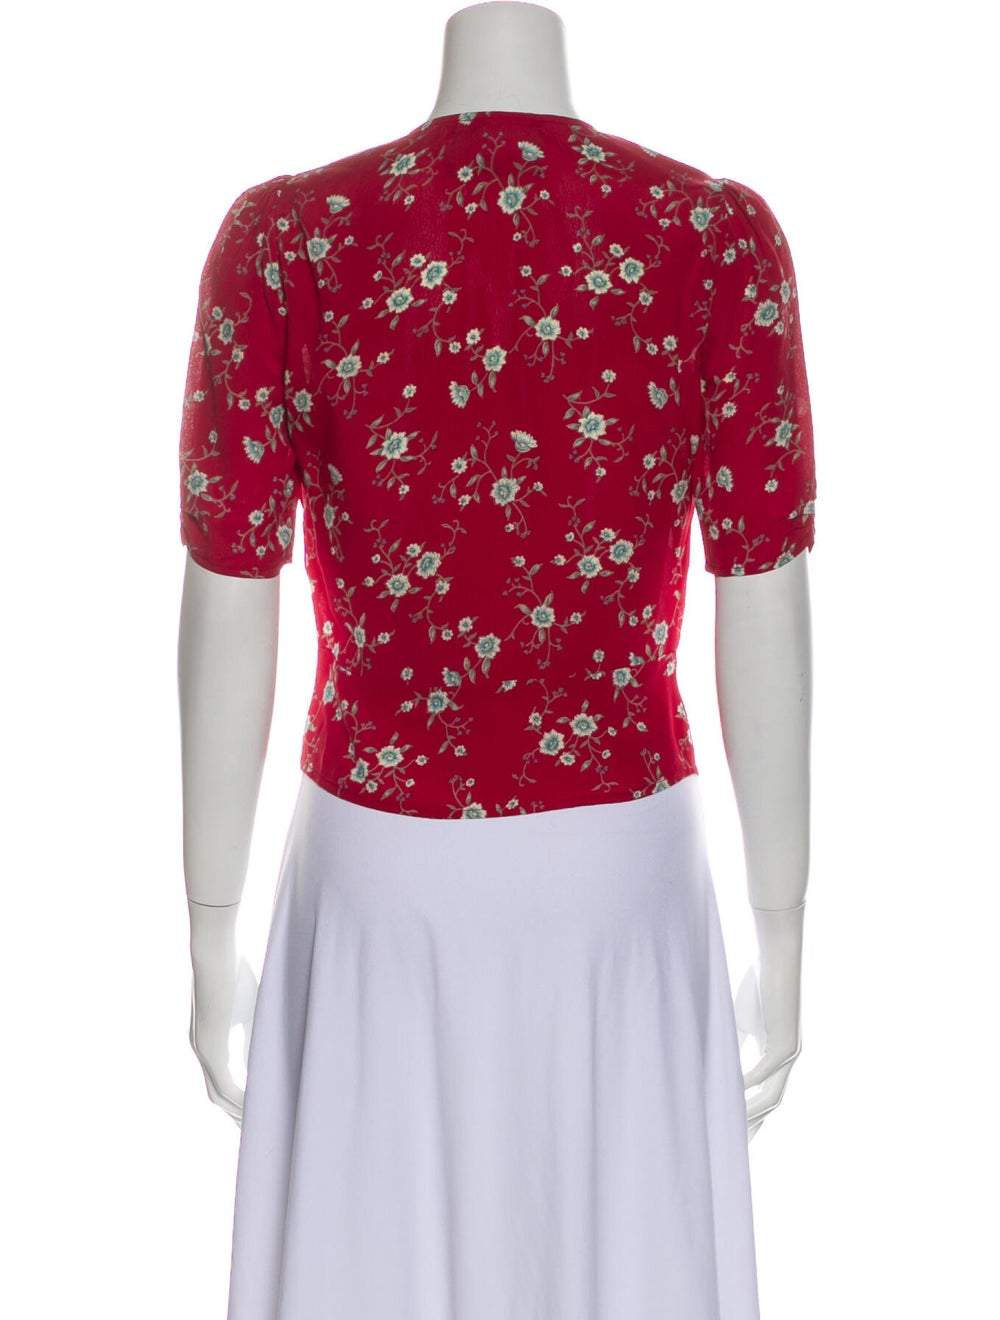 Reformation Floral Print V-Neck Crop Top Red - image 3